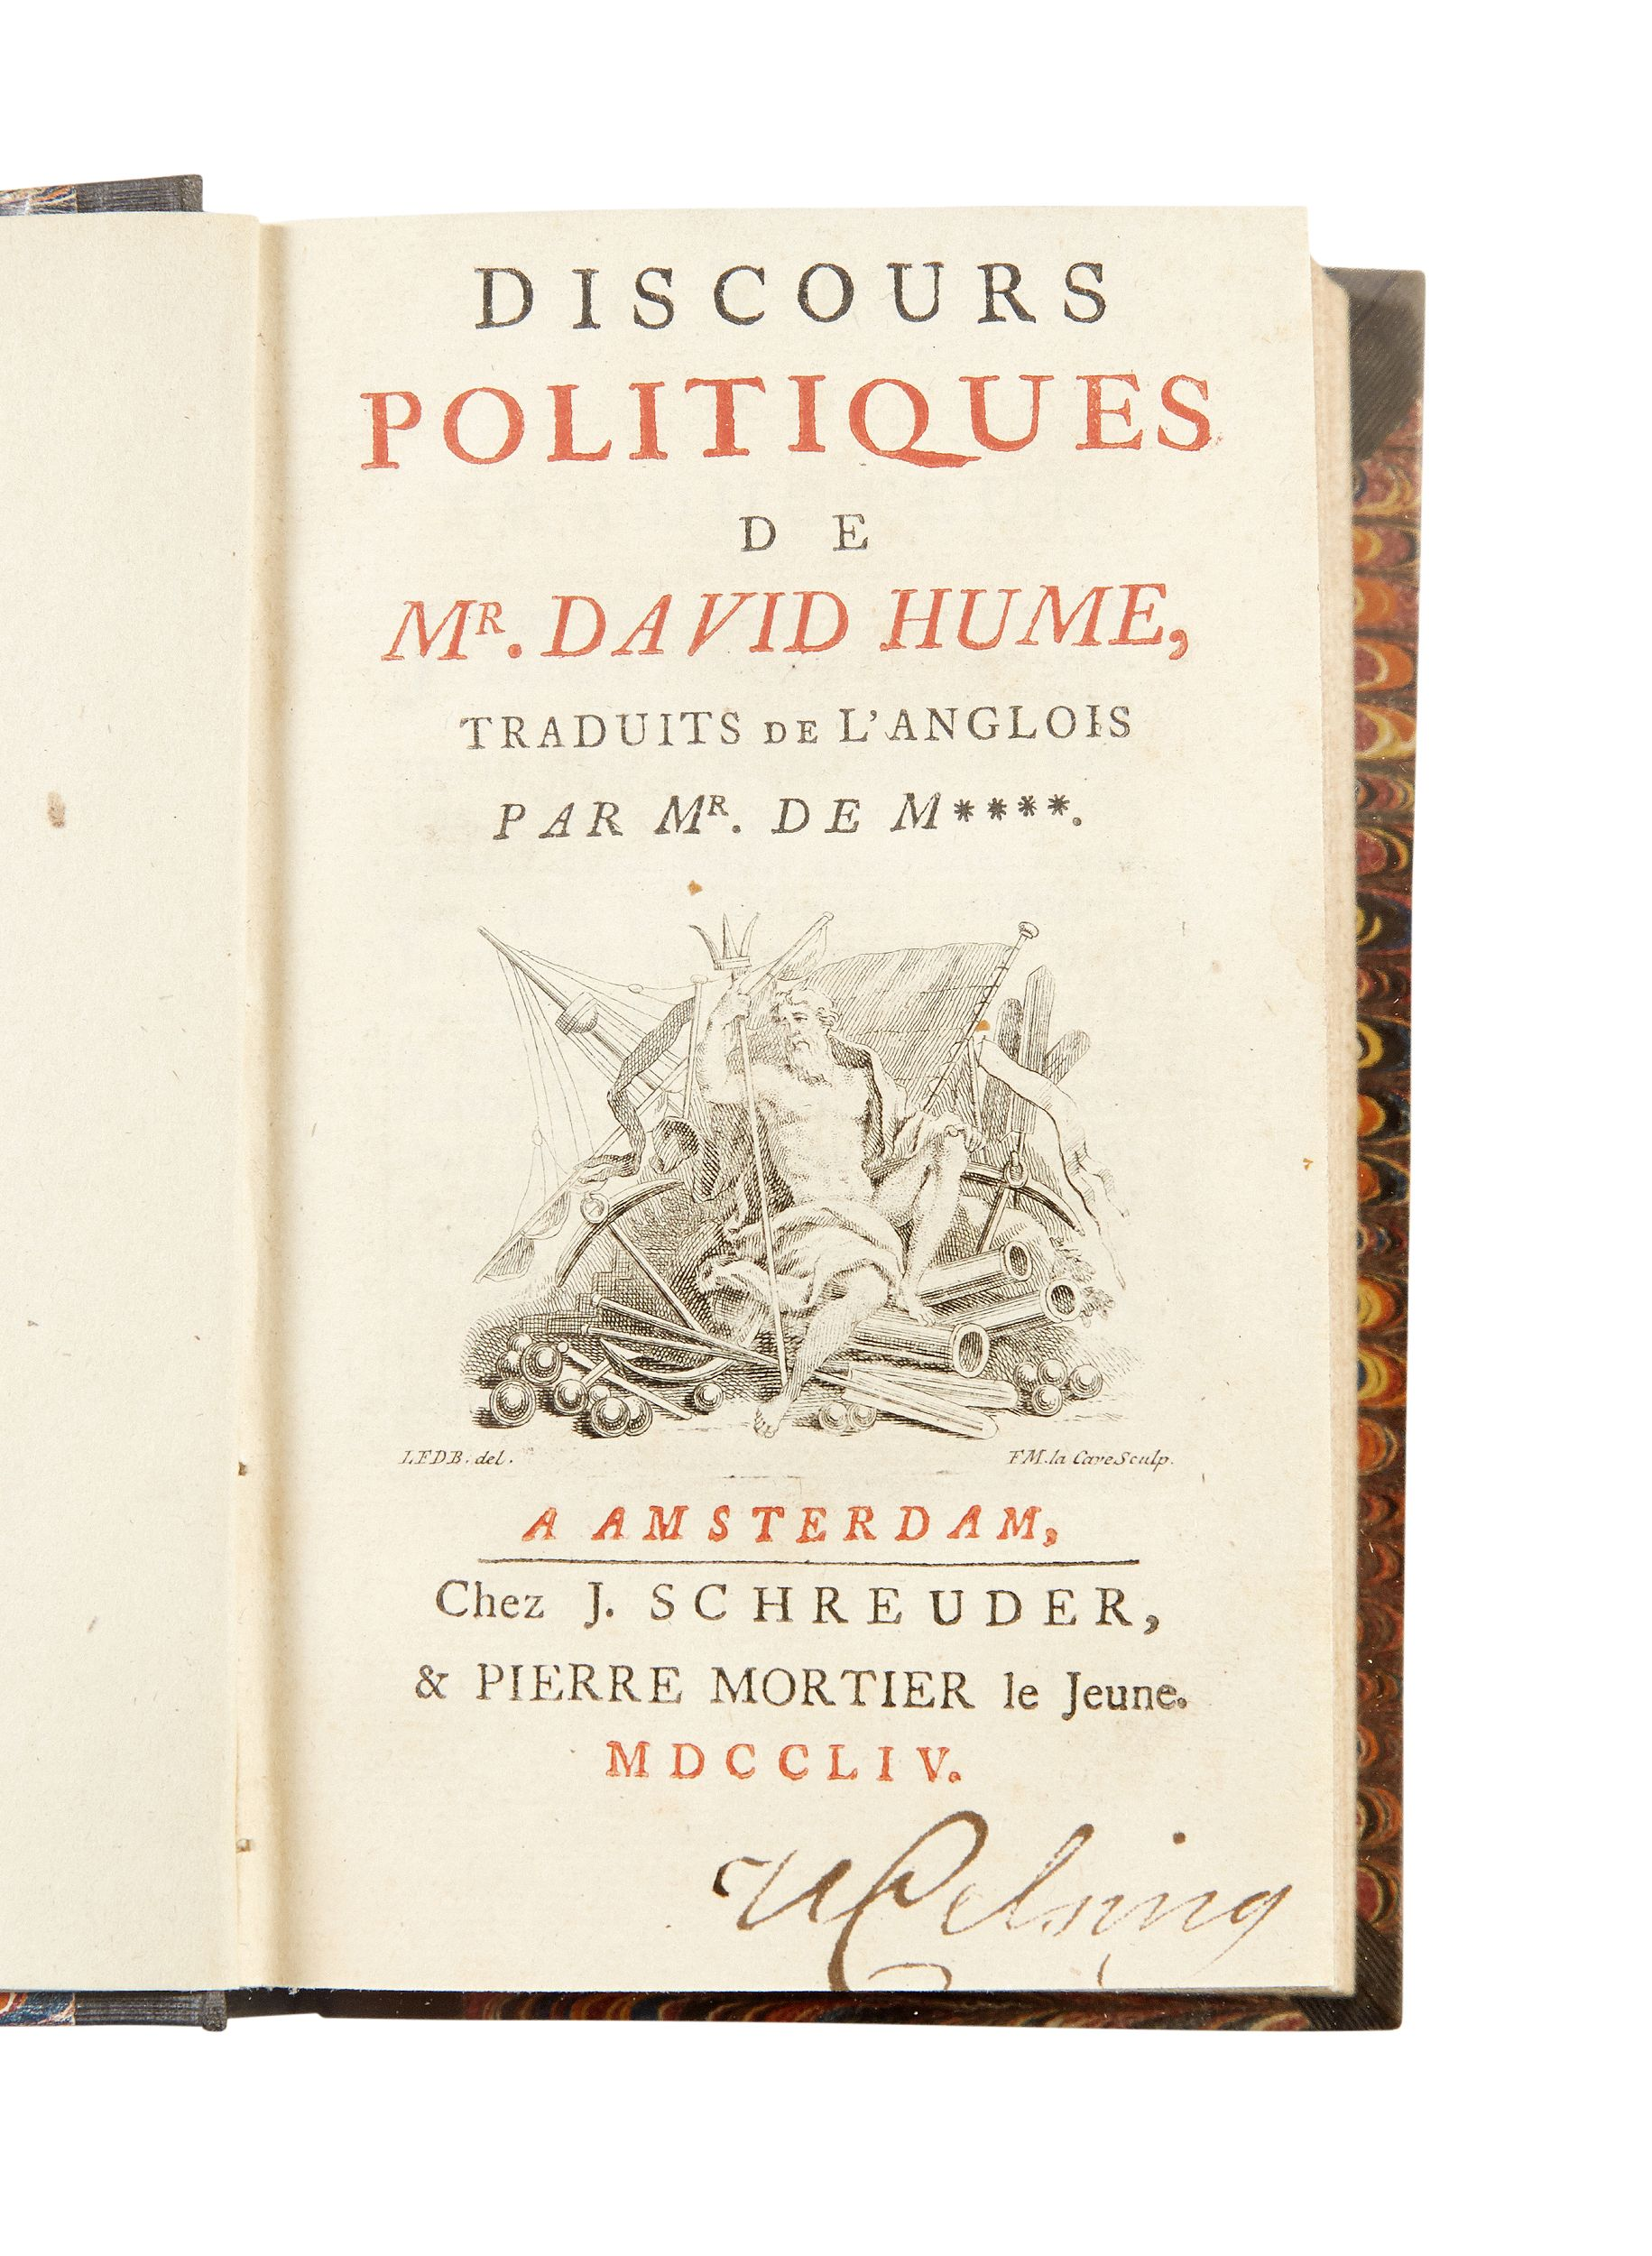 Hume and others on politics